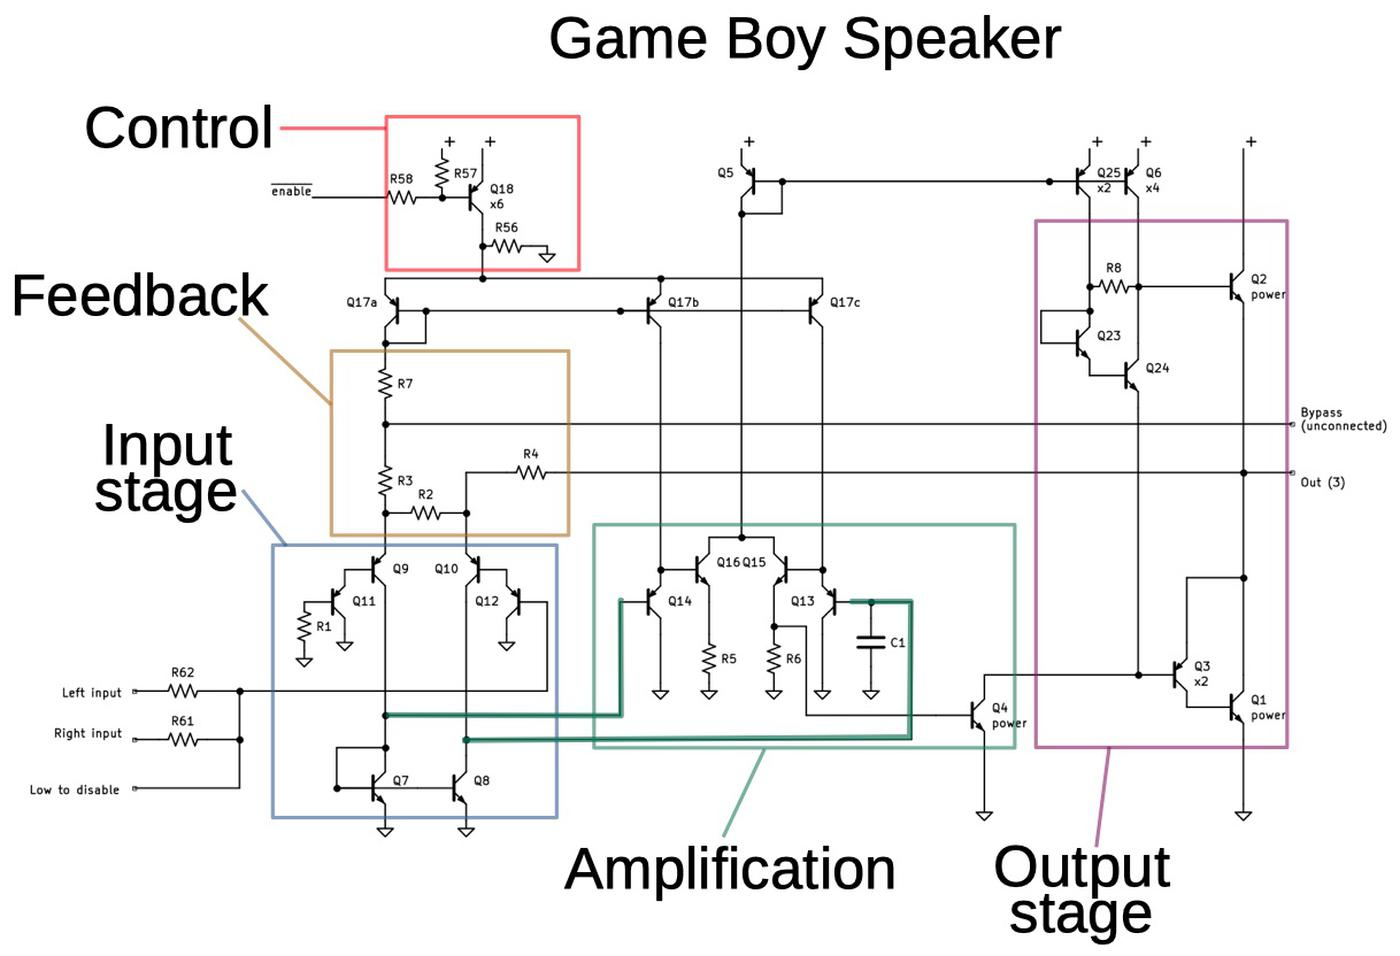 Schematic of the speaker amplifier in the Game Boy audio amplifier chip.